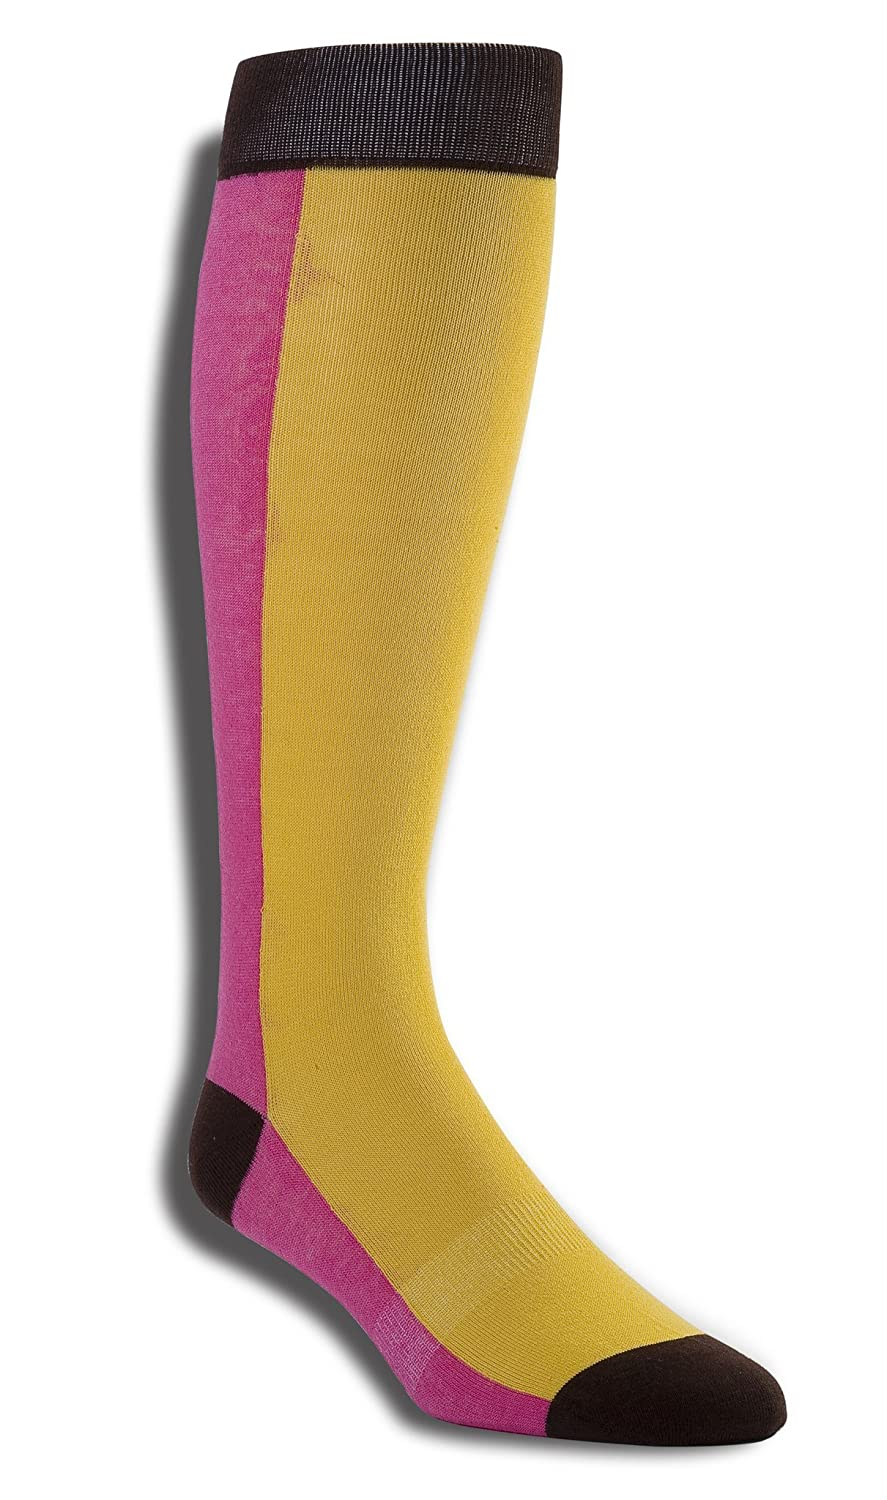 Wits + Beaux Men's Dress Socks 1 Pair (Over-the-Calf) Fun, Colorful Cotton Polyester bc13-checkmate